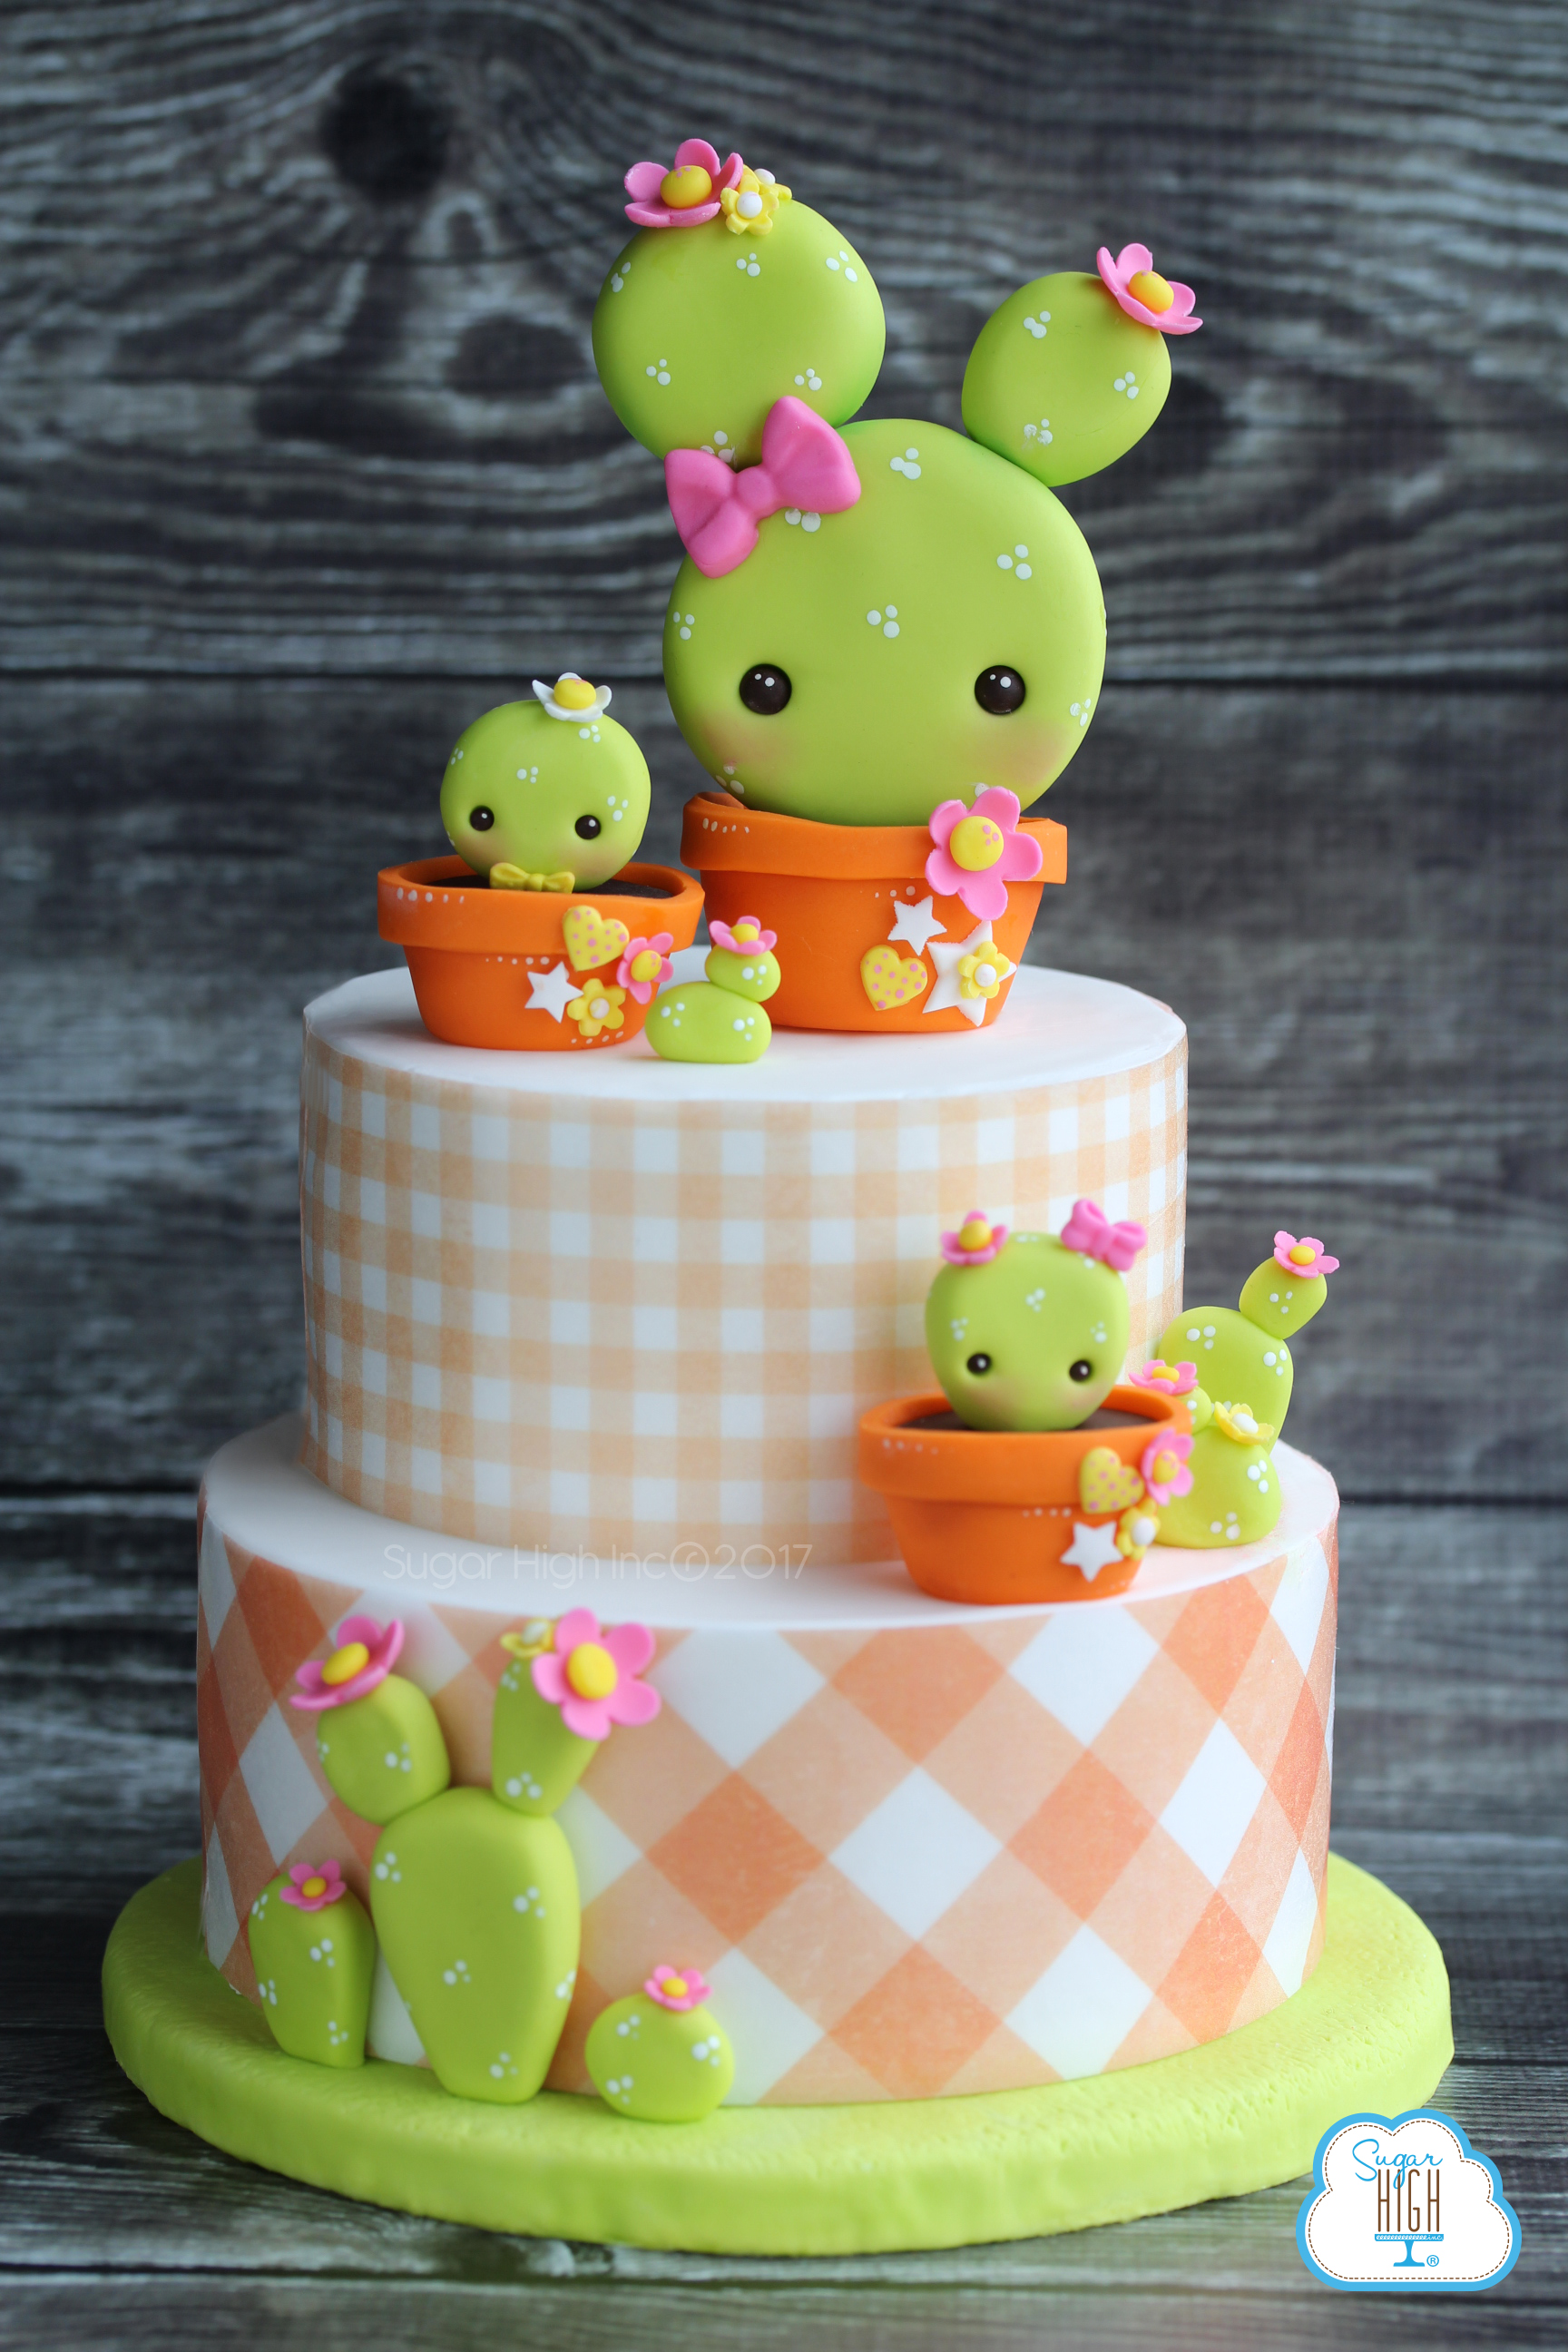 Orange and white plain cactus spring cake